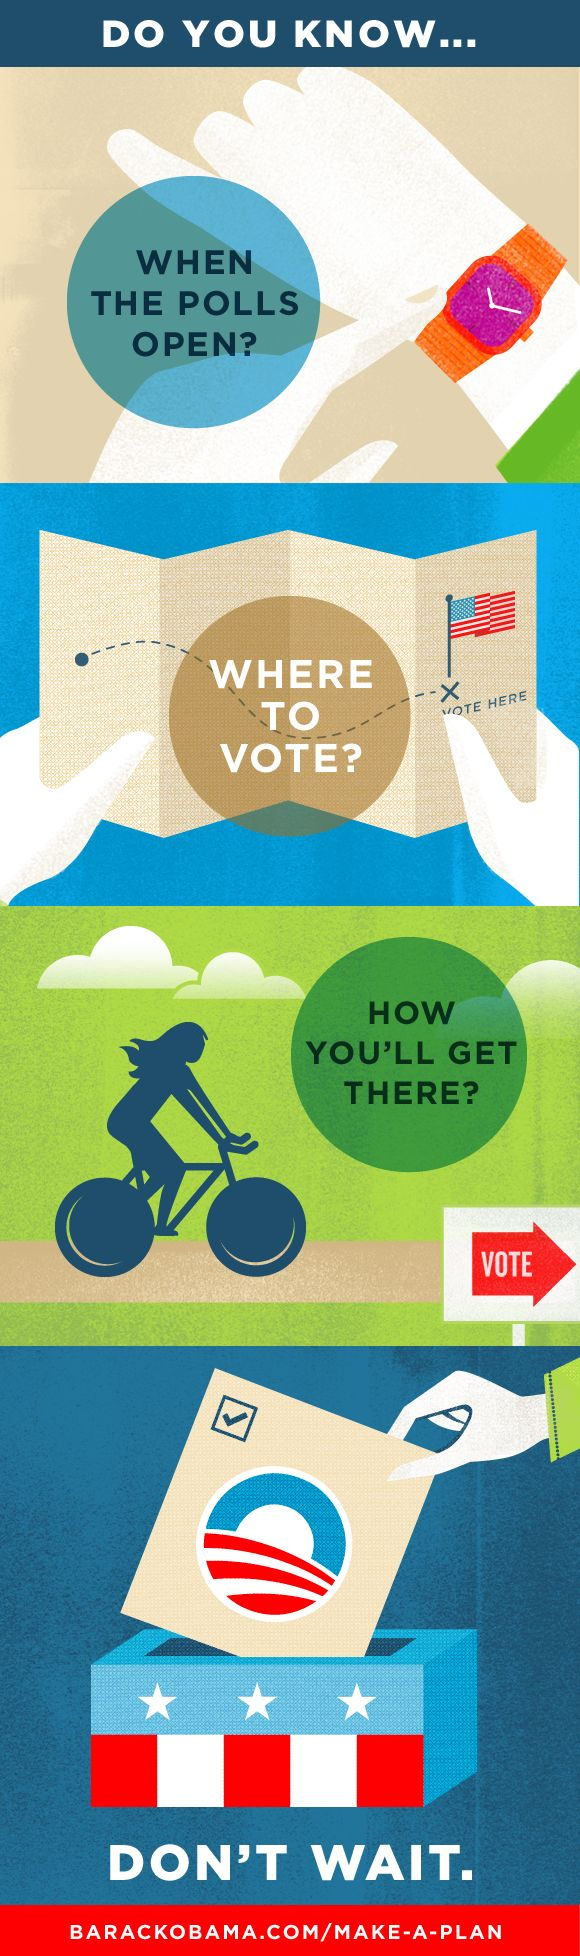 Obama Campaign, vote graphic. Way cool!  Cool Campaign. Rather it be for the other guy.